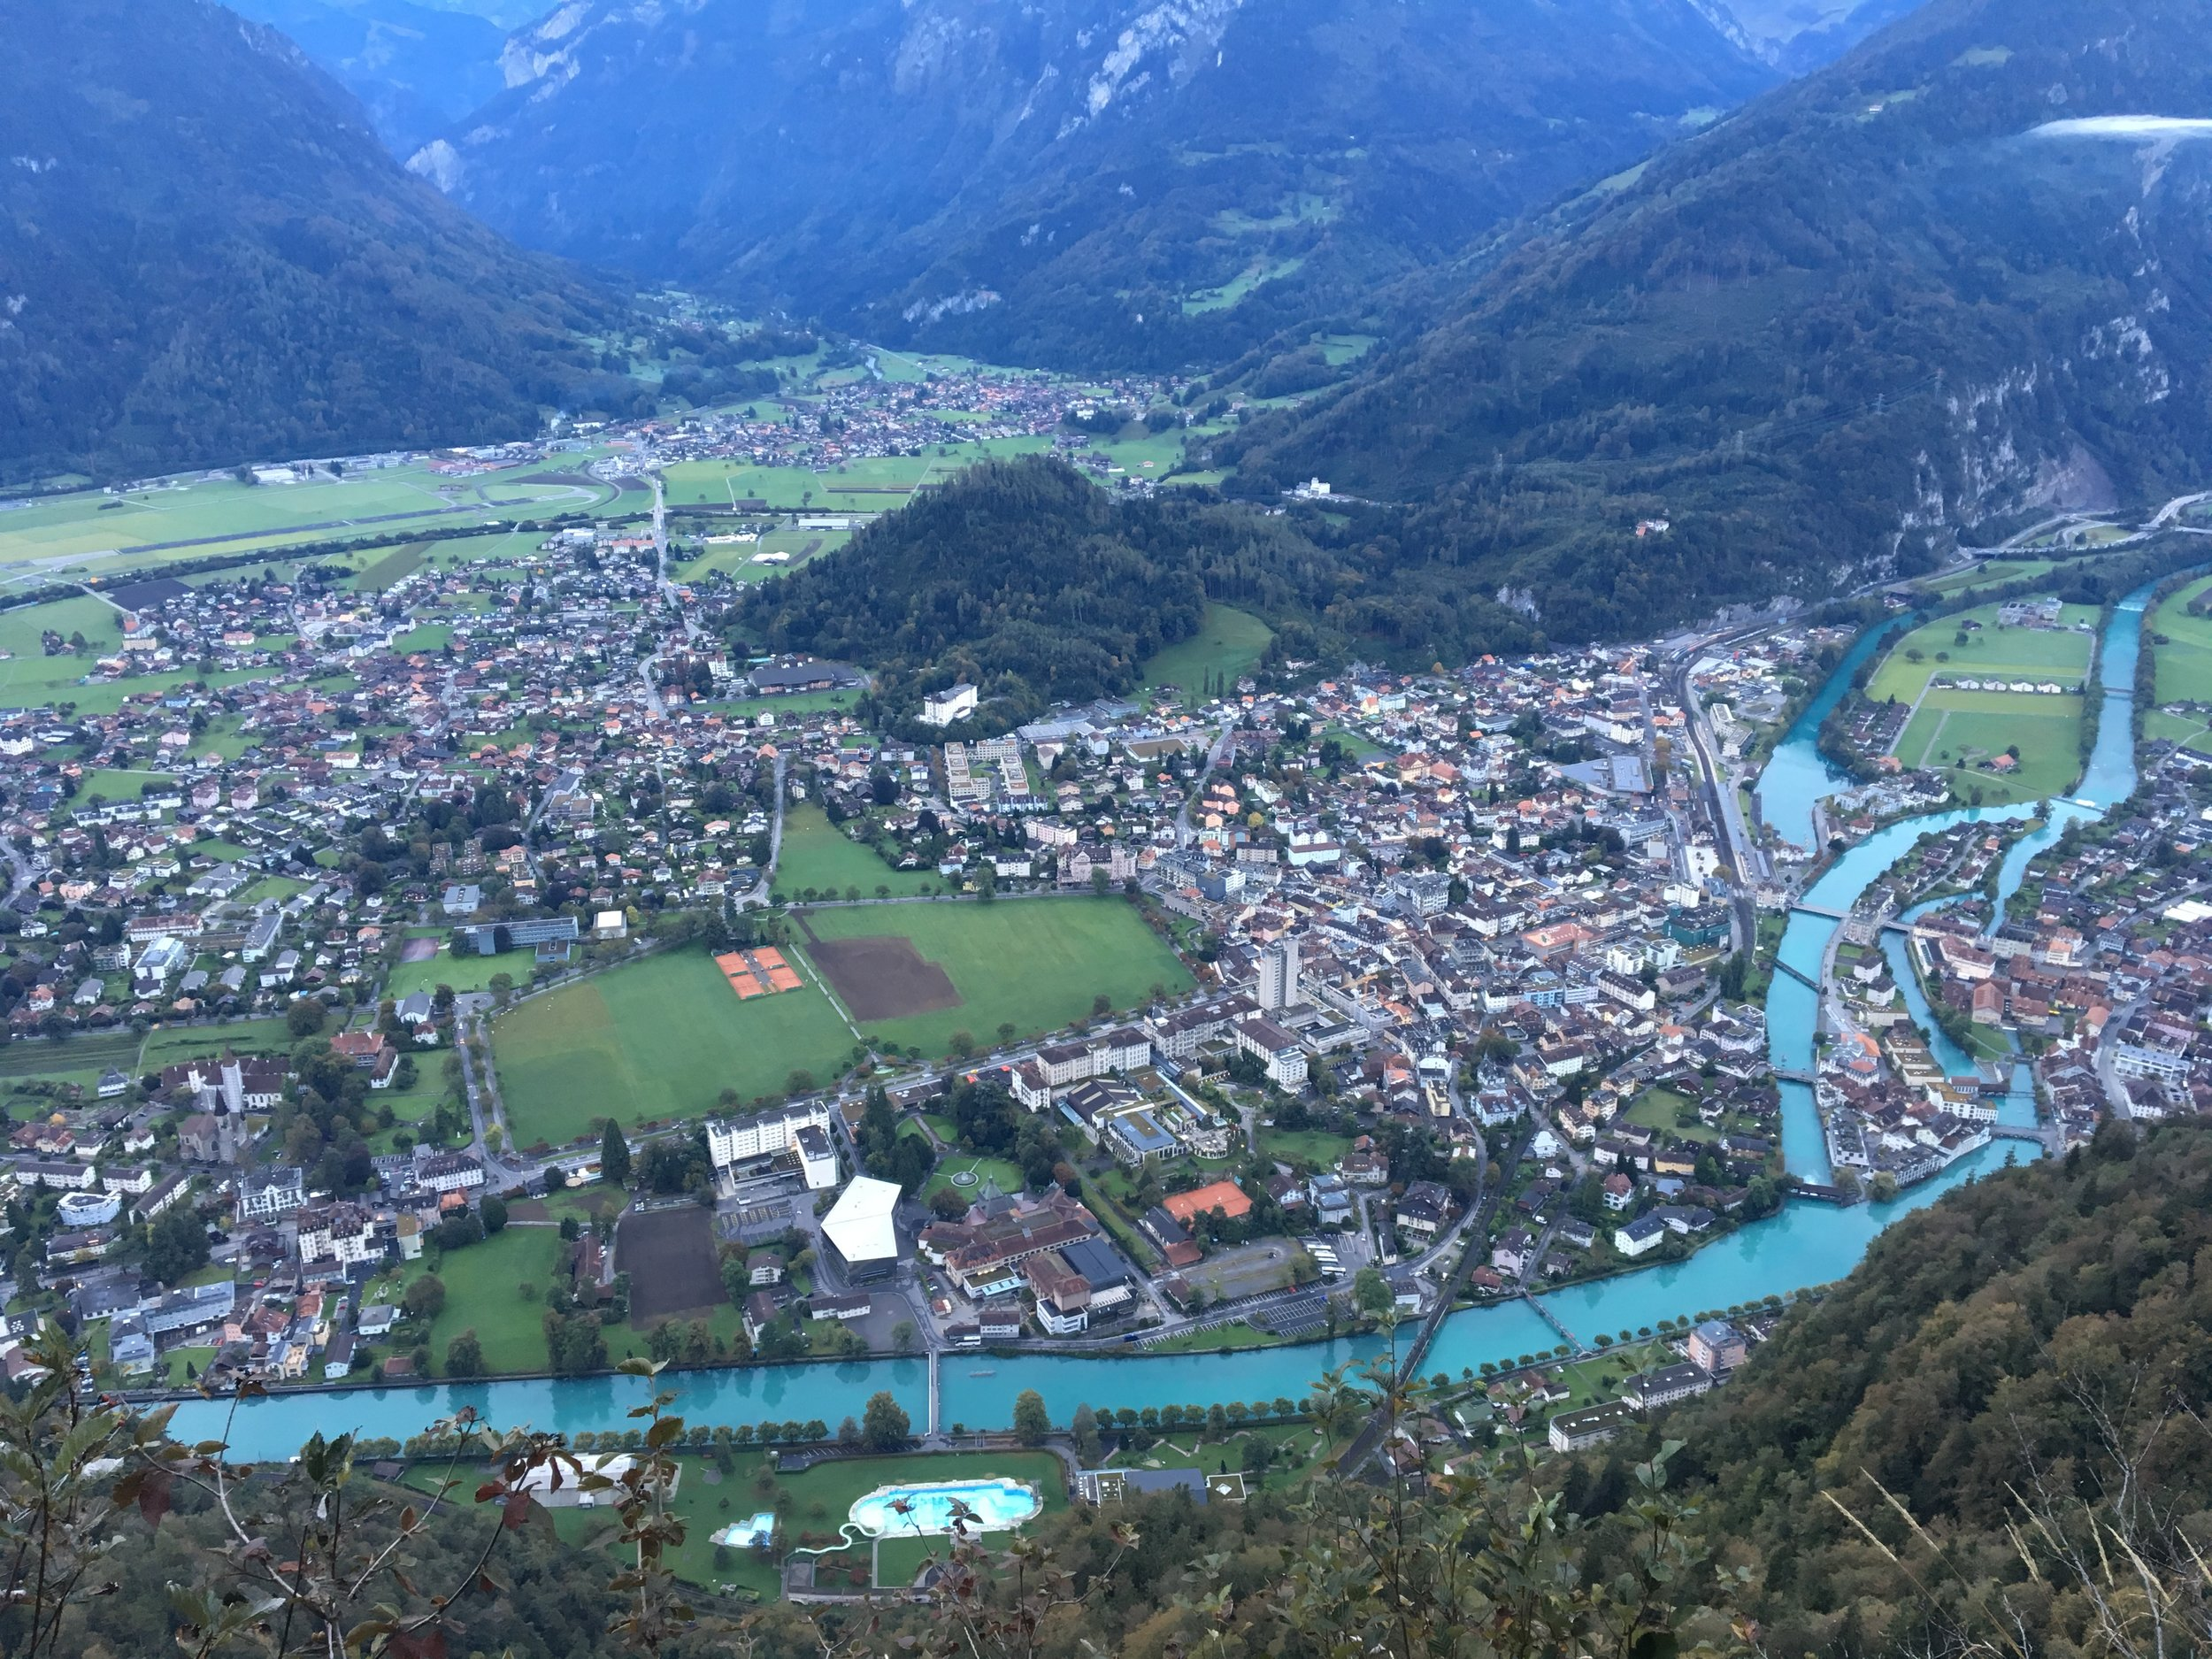 Interlaken from above